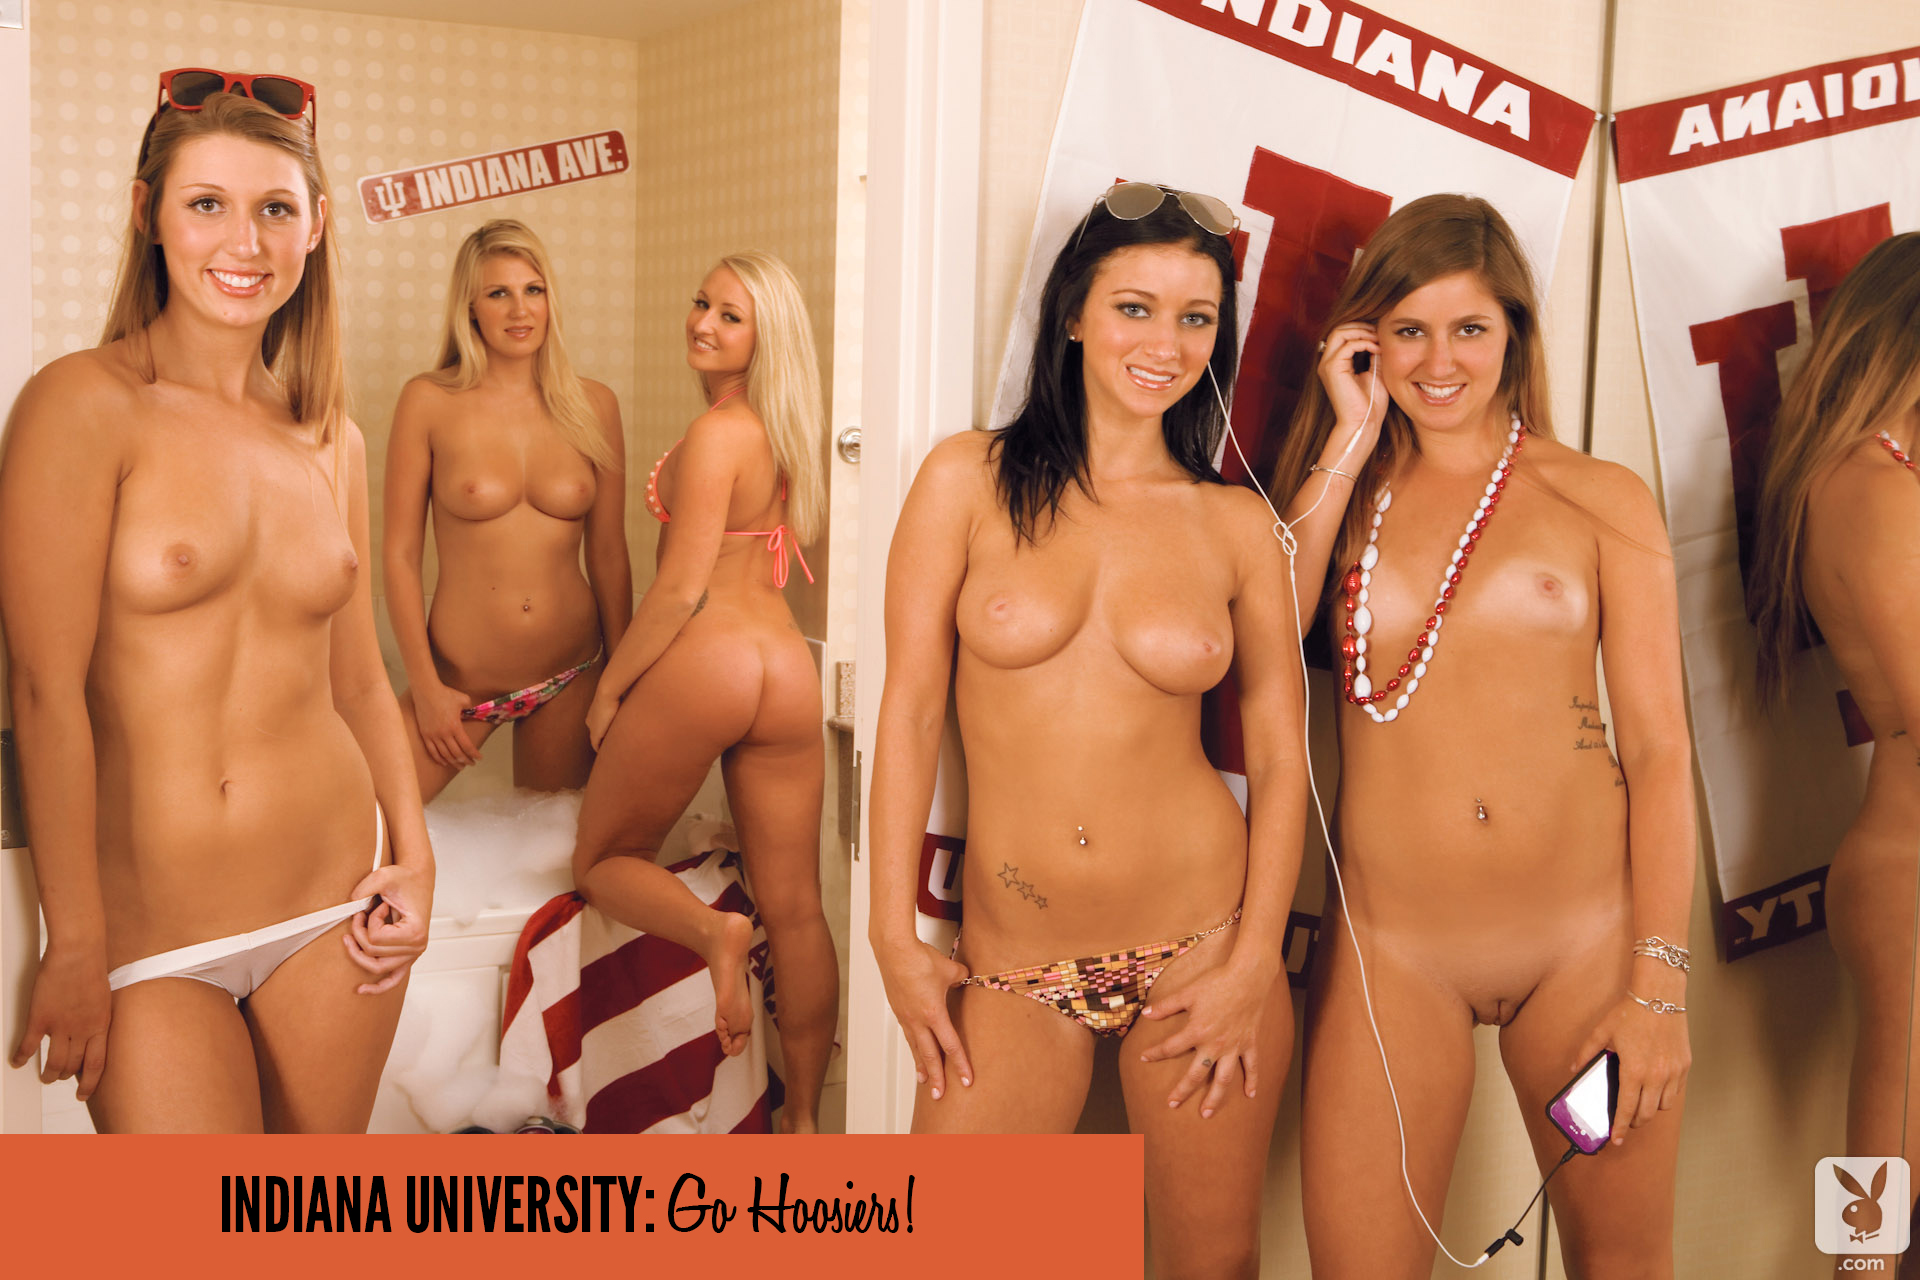 For nude girls of the big ten playboy the